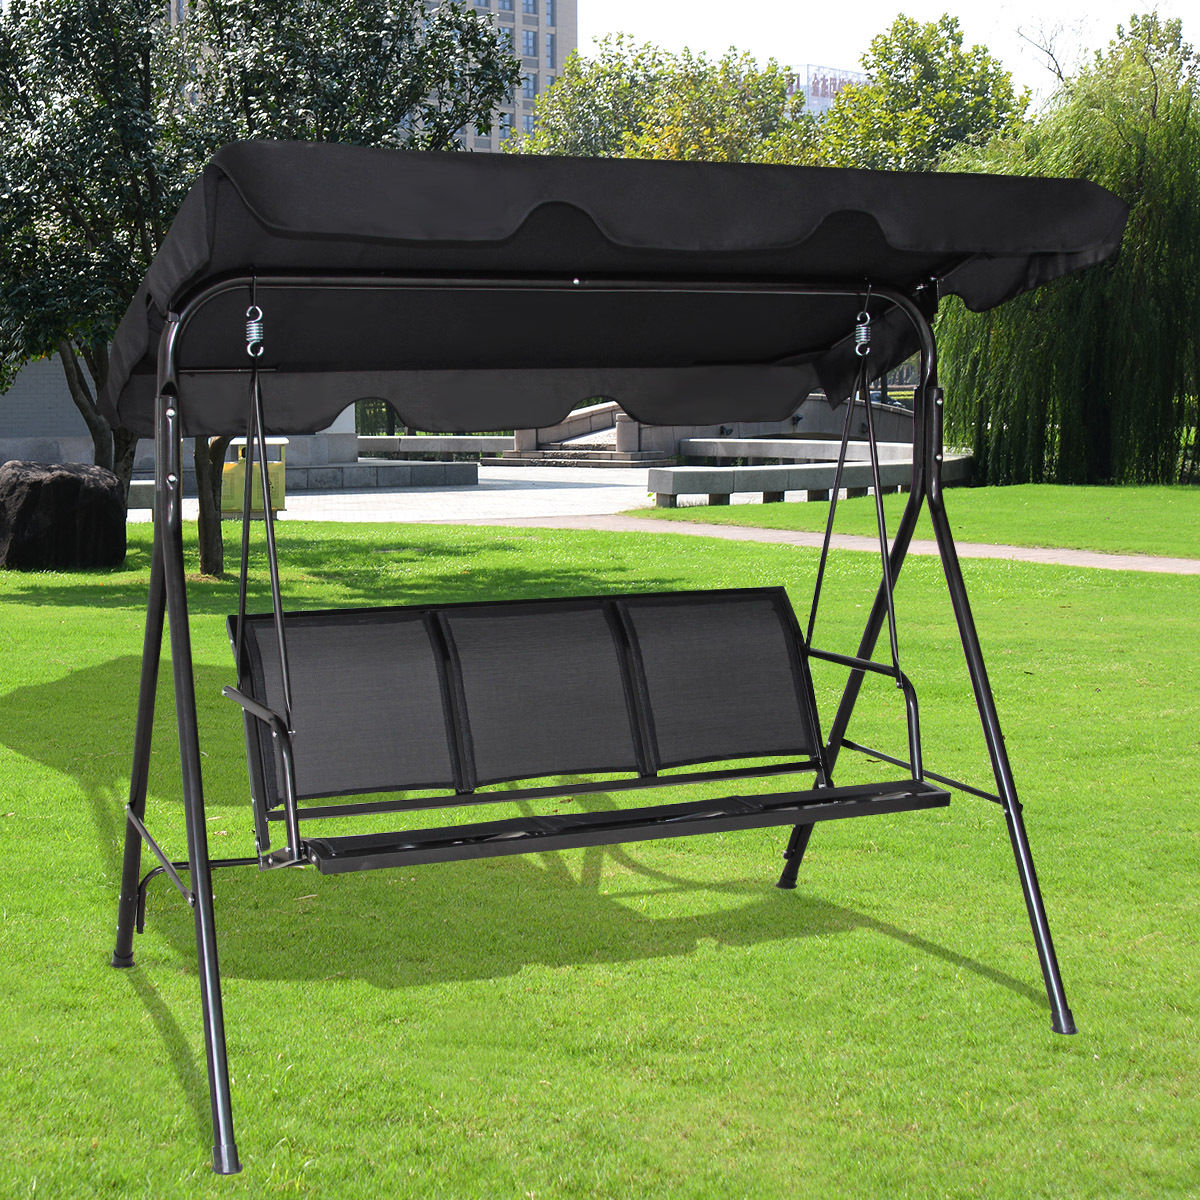 Goplus 3 Person Outdoor Patio Swing Canopy Canopy Swing Chair Patio Hammock Black & Goplus 3 Person Outdoor Patio Swing Canopy Canopy Swing Chair ...